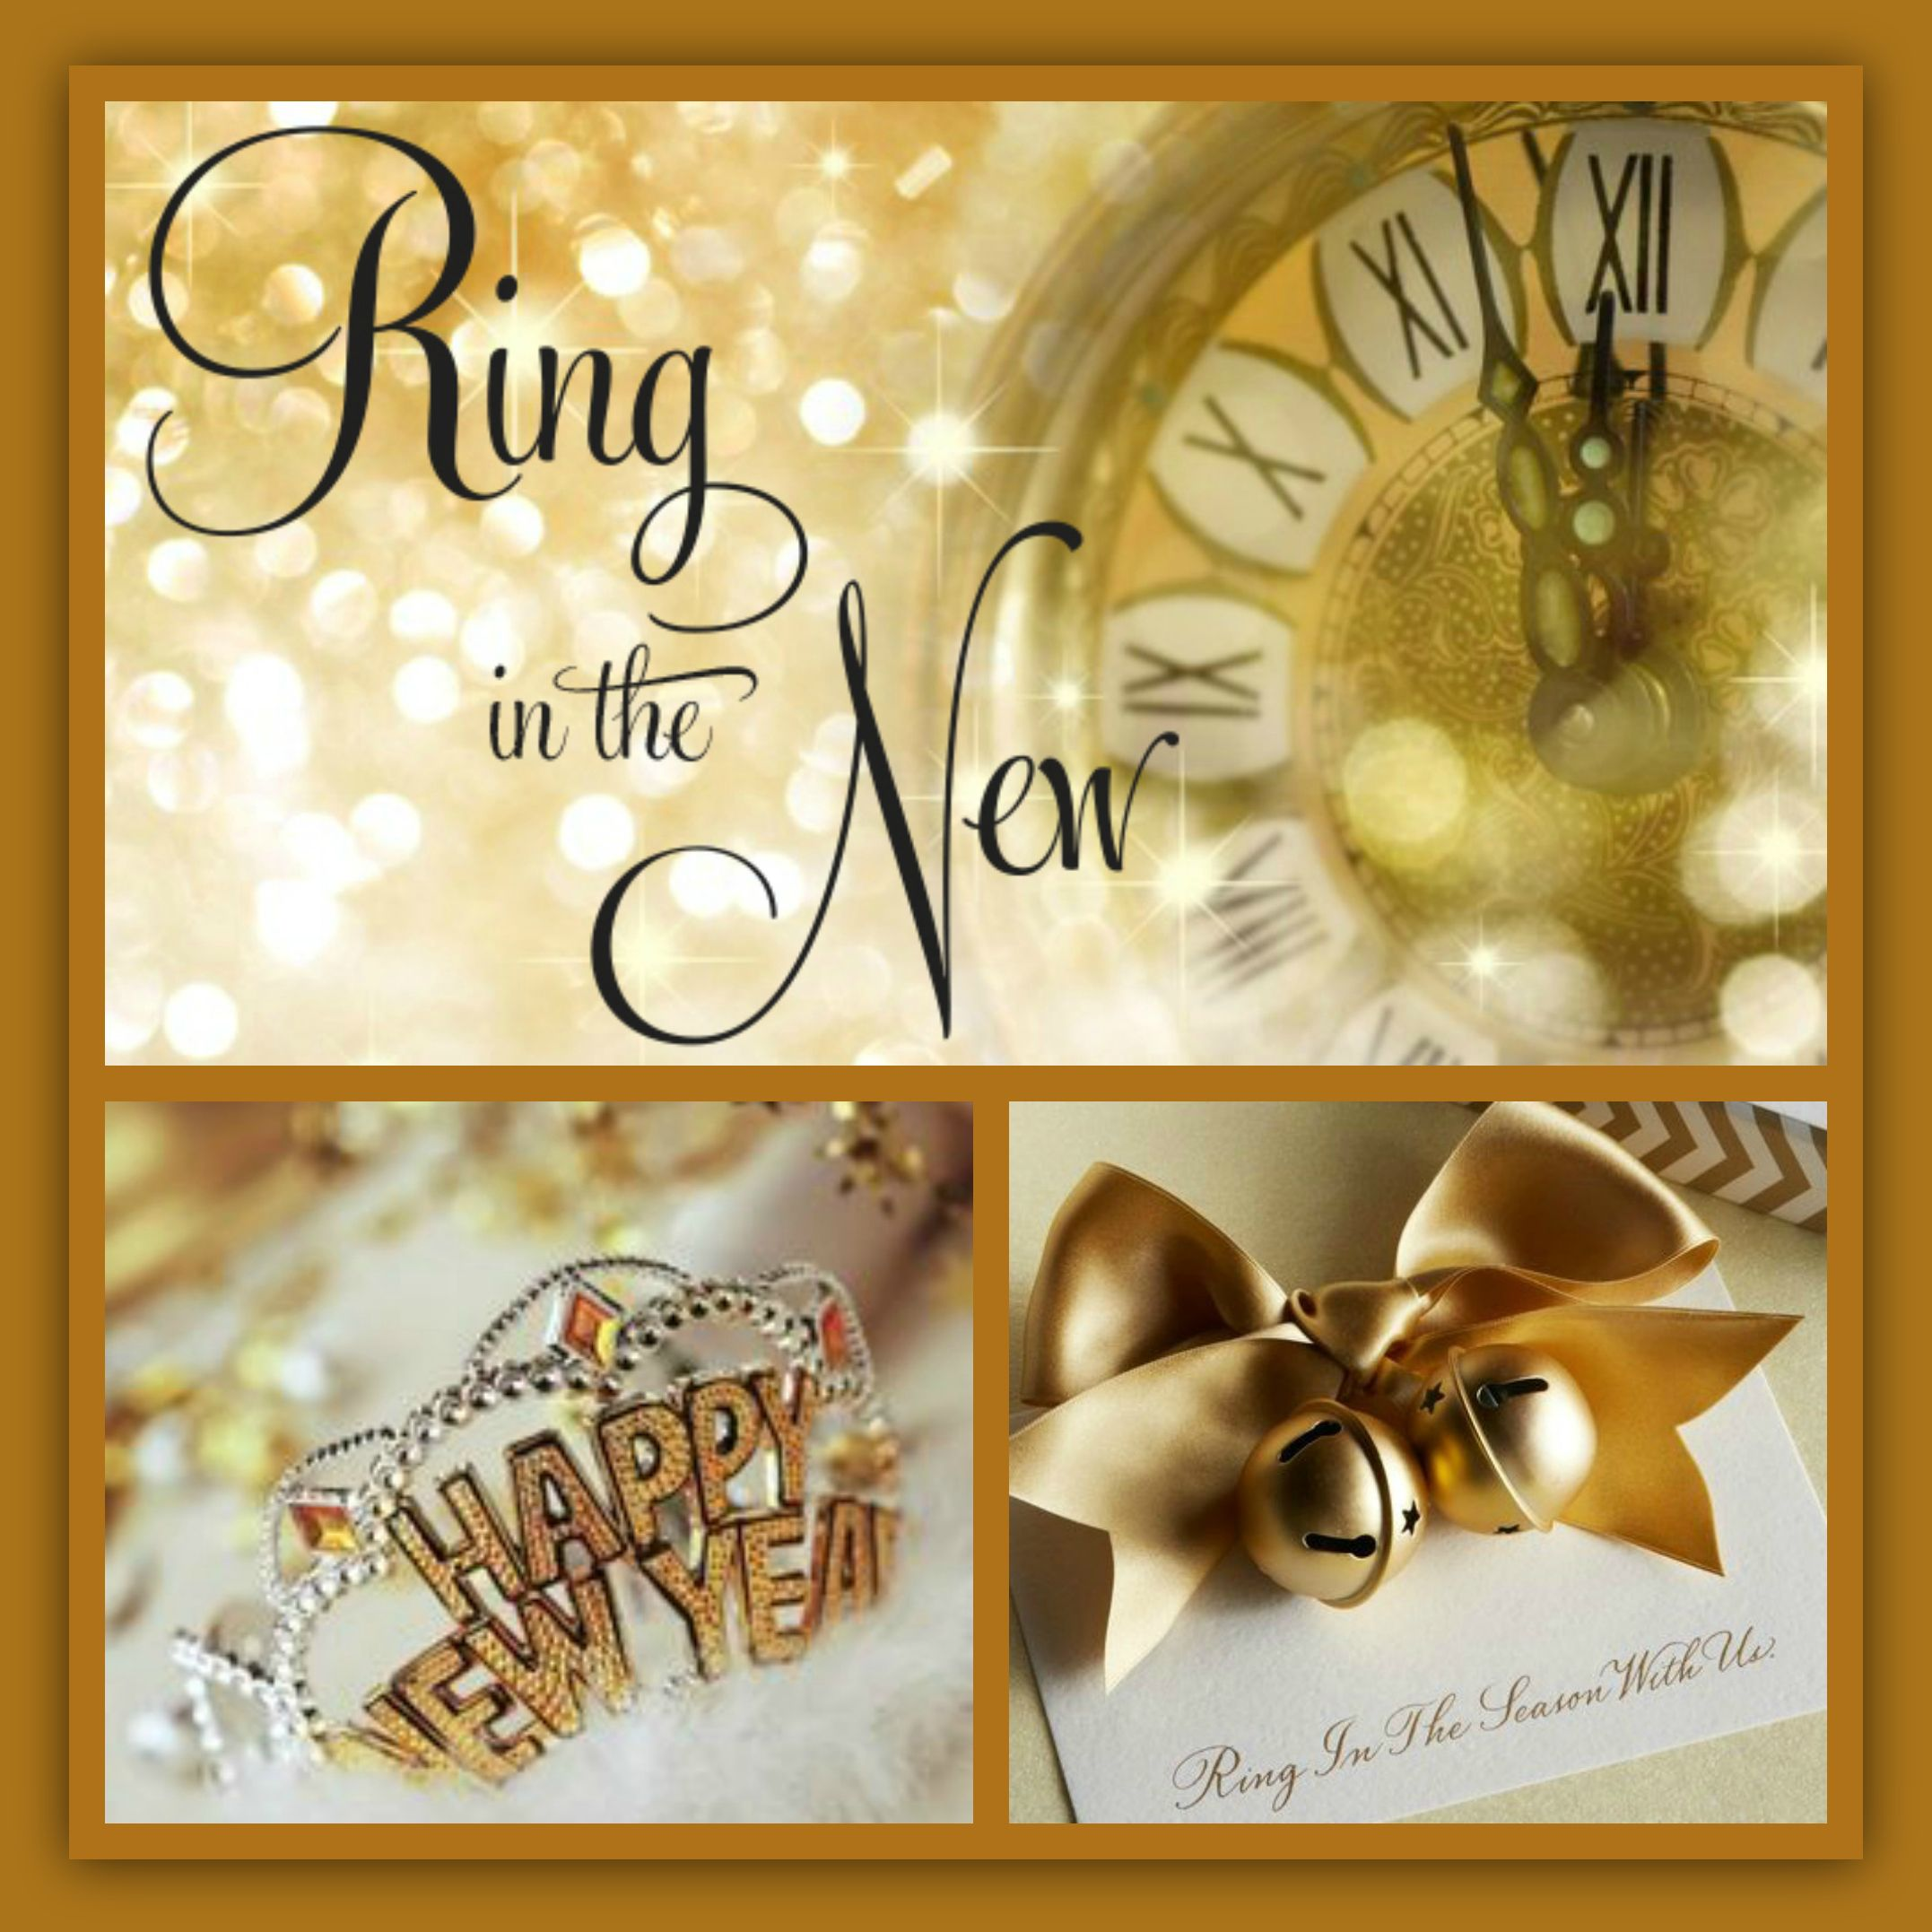 Beauty New Year S Eve 2016 Collage By Blj New Year S Eve Celebrations New Year Celebration New Year Message